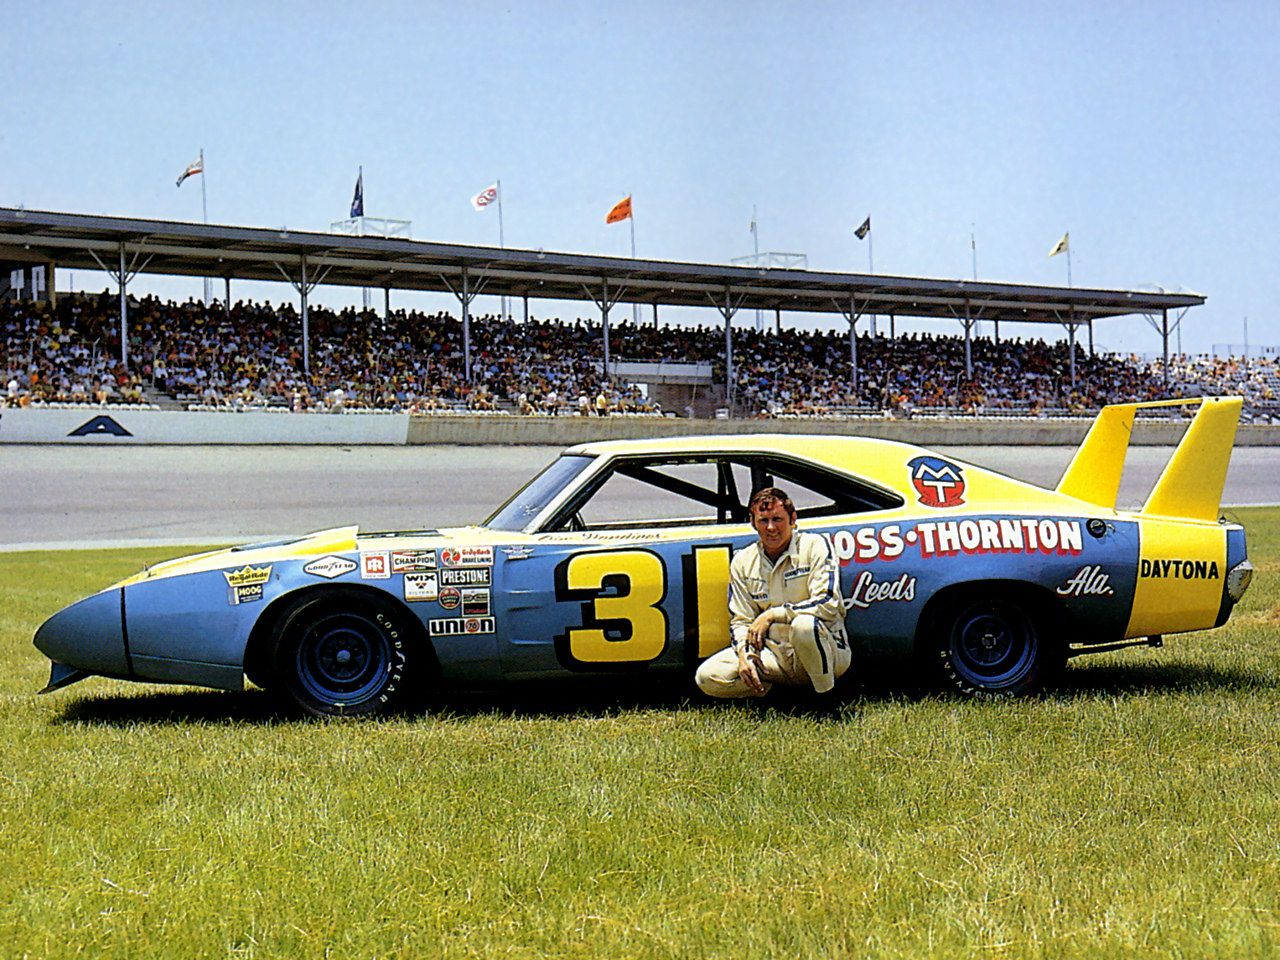 Nascar Driver Jim Vandiver And A 1969 Dodge Charger Daytona With